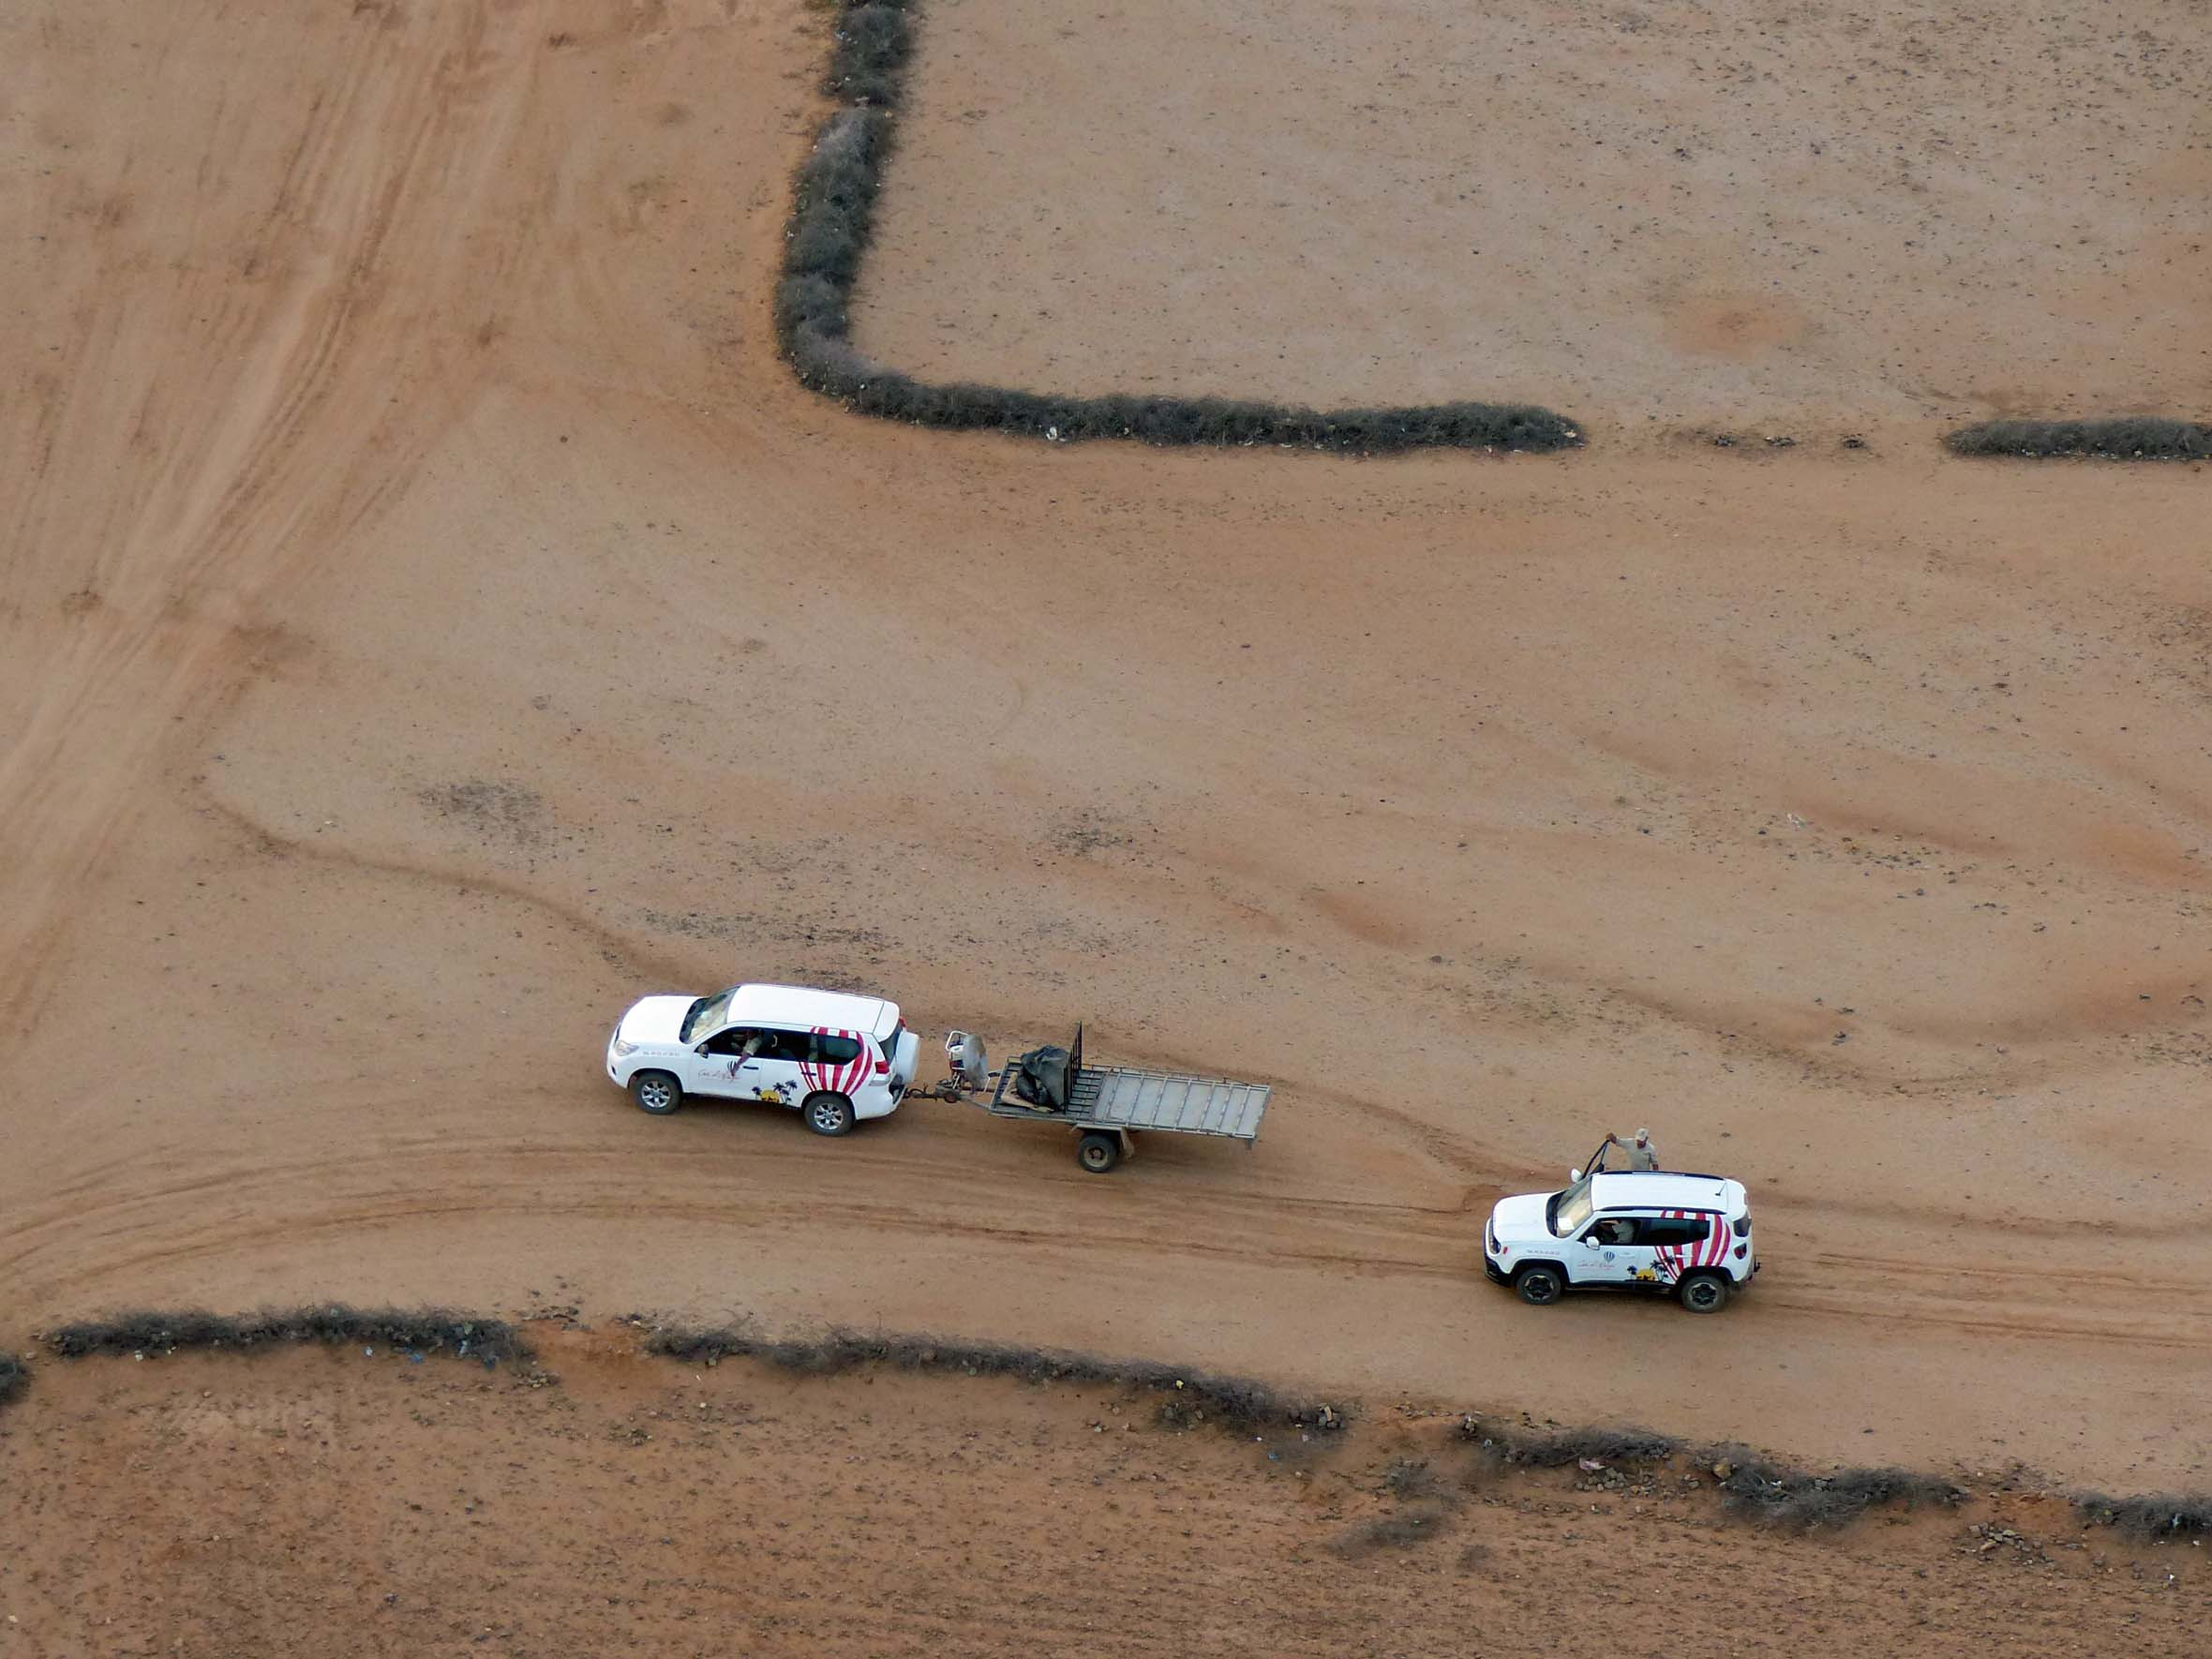 Aerial view of two white vehicles in the desert